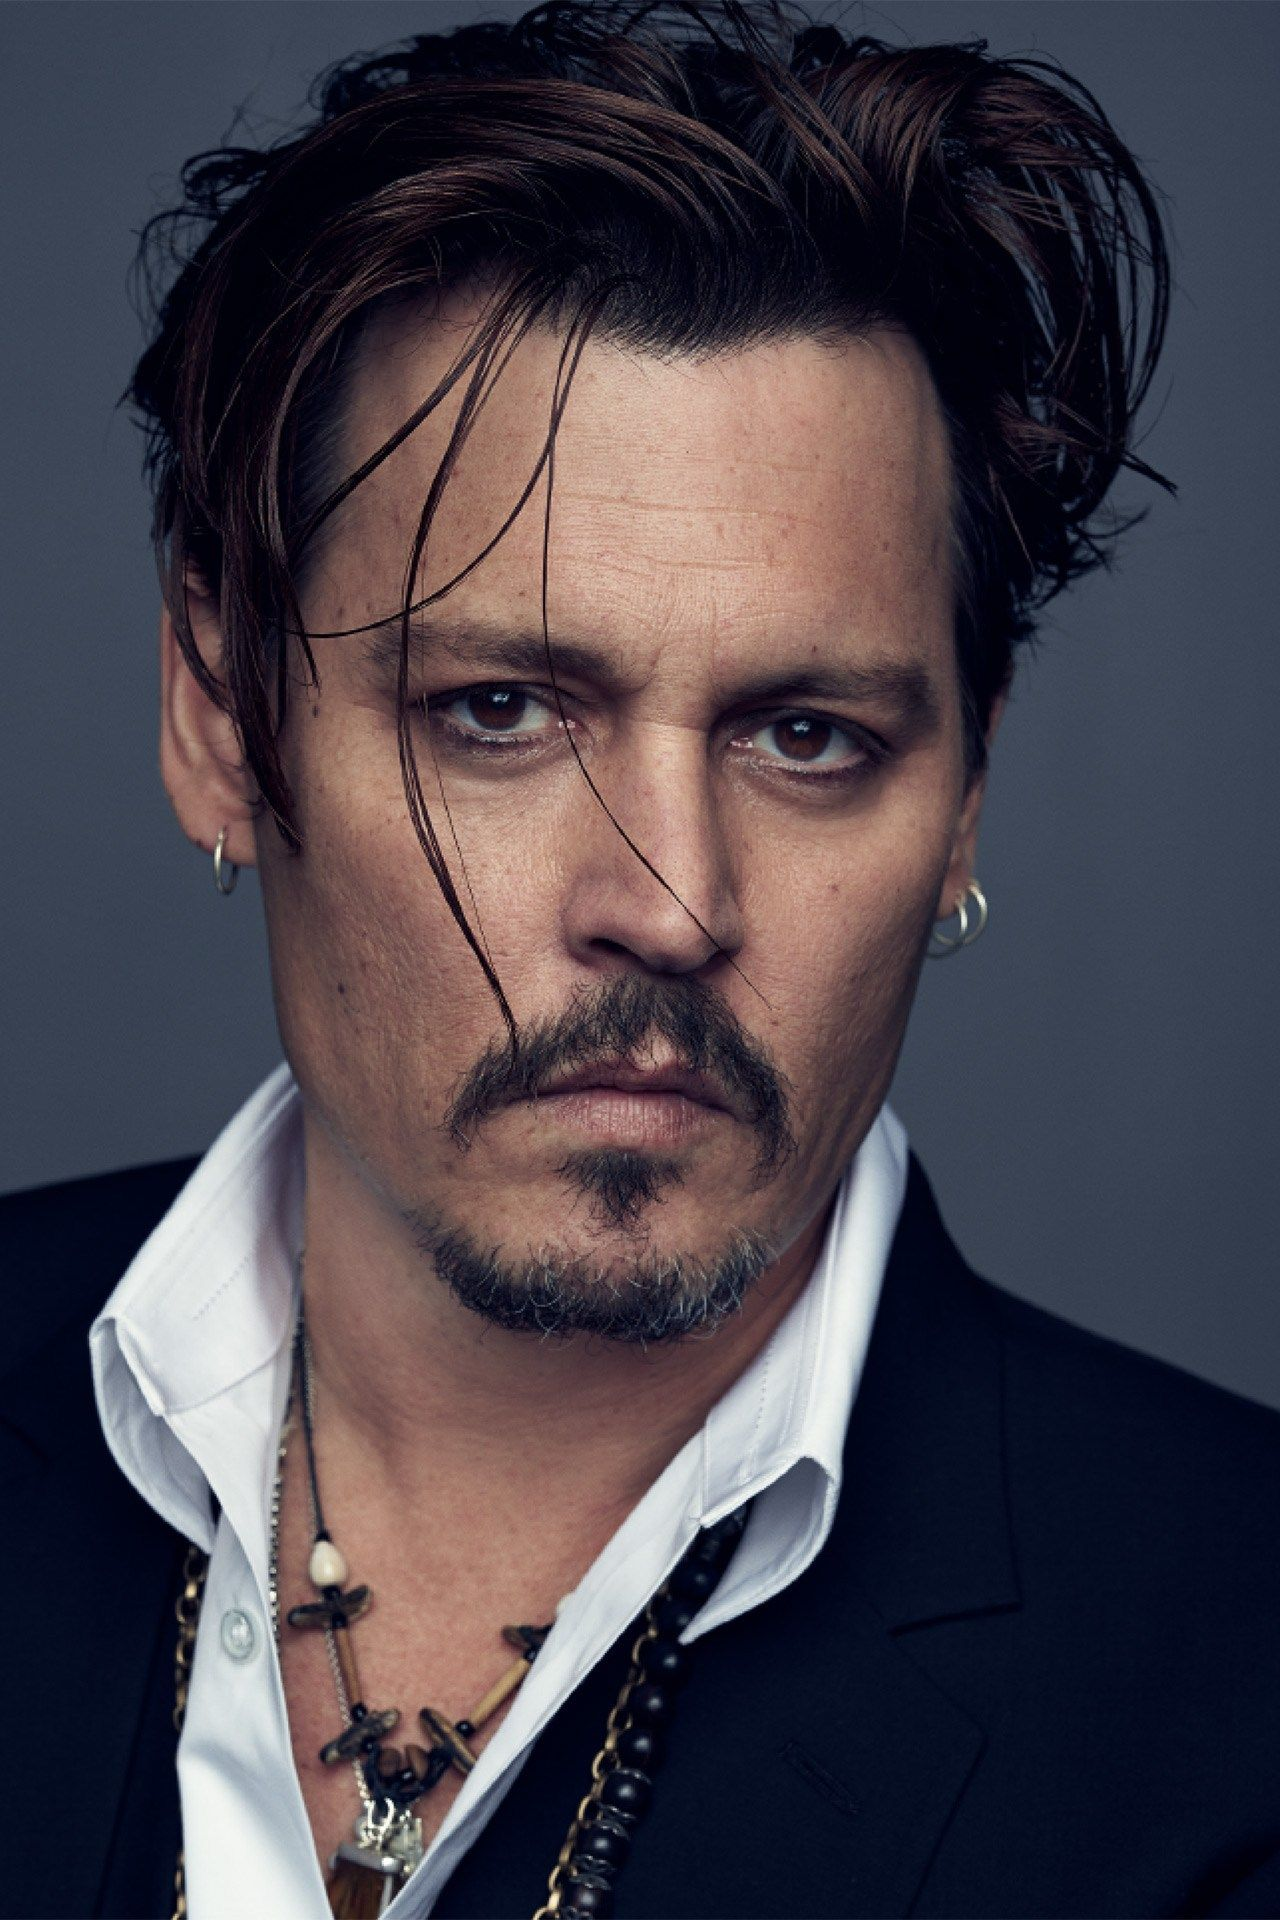 Johnny Depp New Long Hairstyle Homme In 2019 Celebrites Monroe